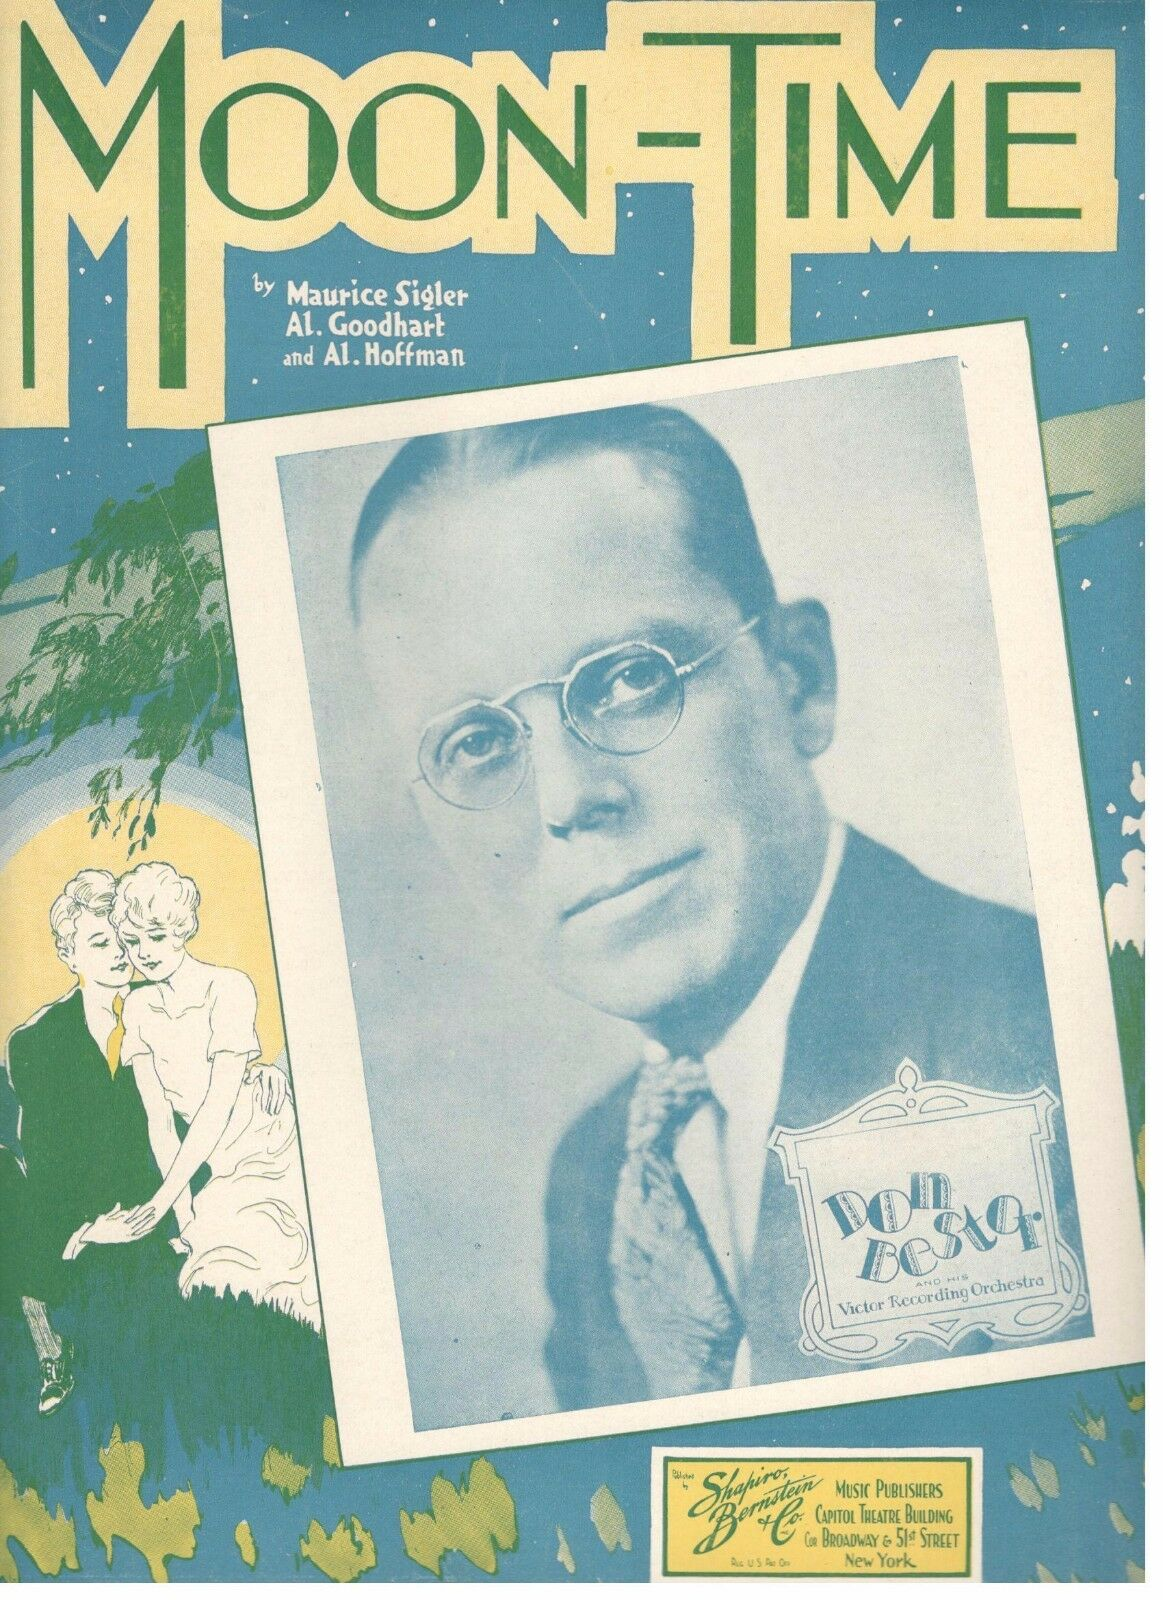 DON BESTER  MOON-TIME  PIANO VOCAL CHORDS SHEET MUSIC-1934-VERY RARE-NEW-MINT